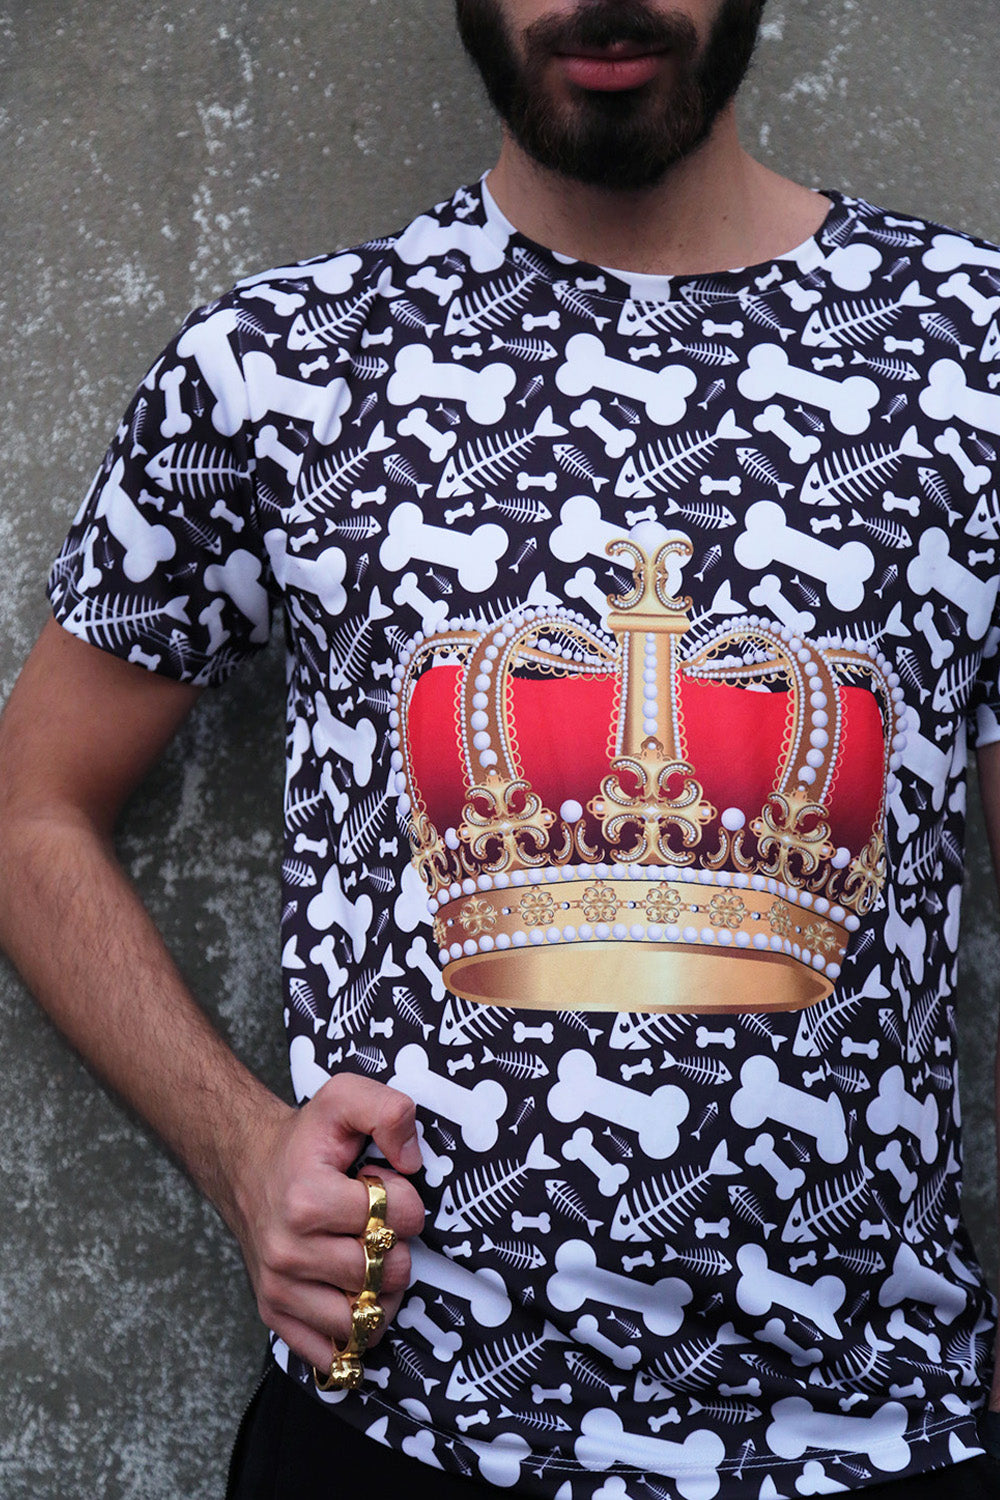 King's Gluttony shirt